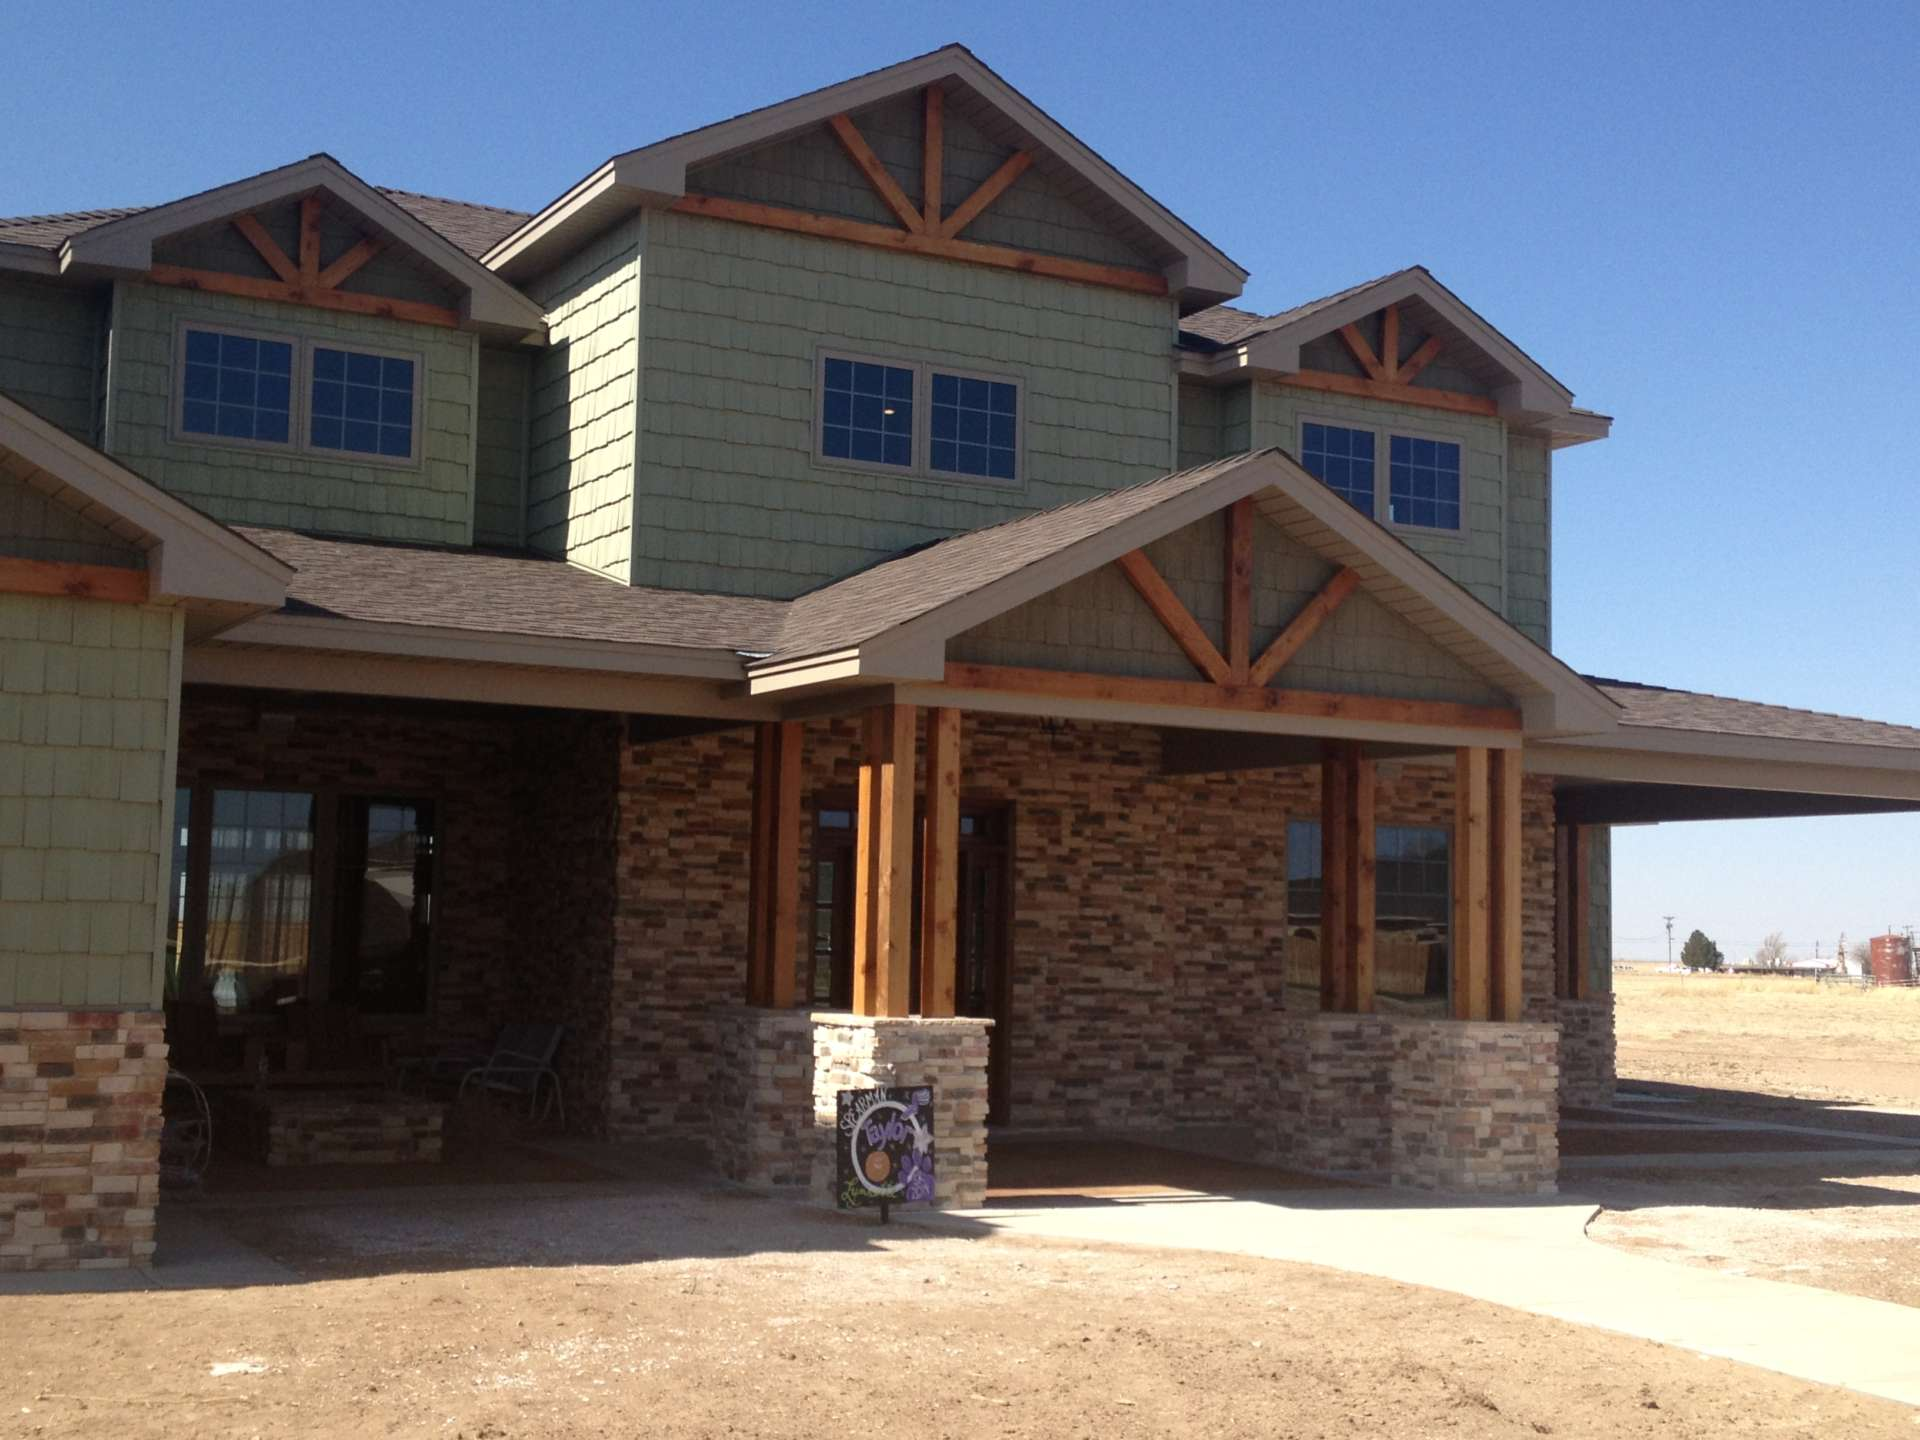 New cole stanley home with rustic porch in amarillo texas